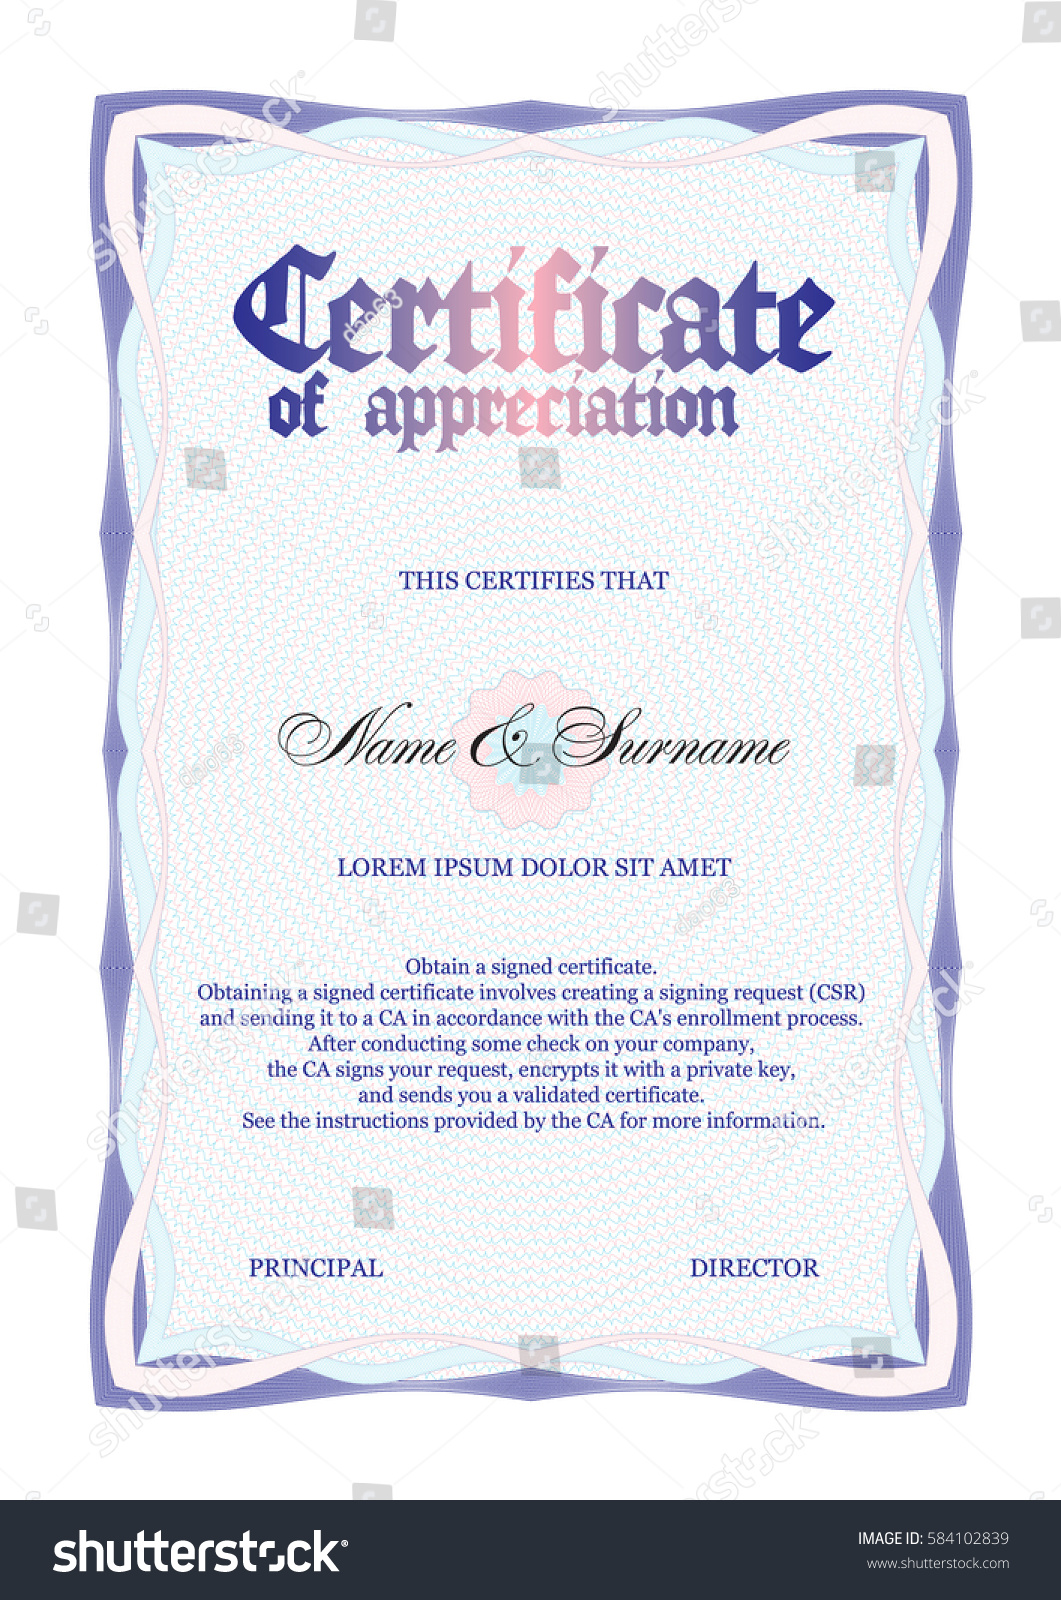 Ase certificate template gallery templates example free download a5 size certificate template gallery certificate design and template ase certificate template image collections templates example alramifo Choice Image